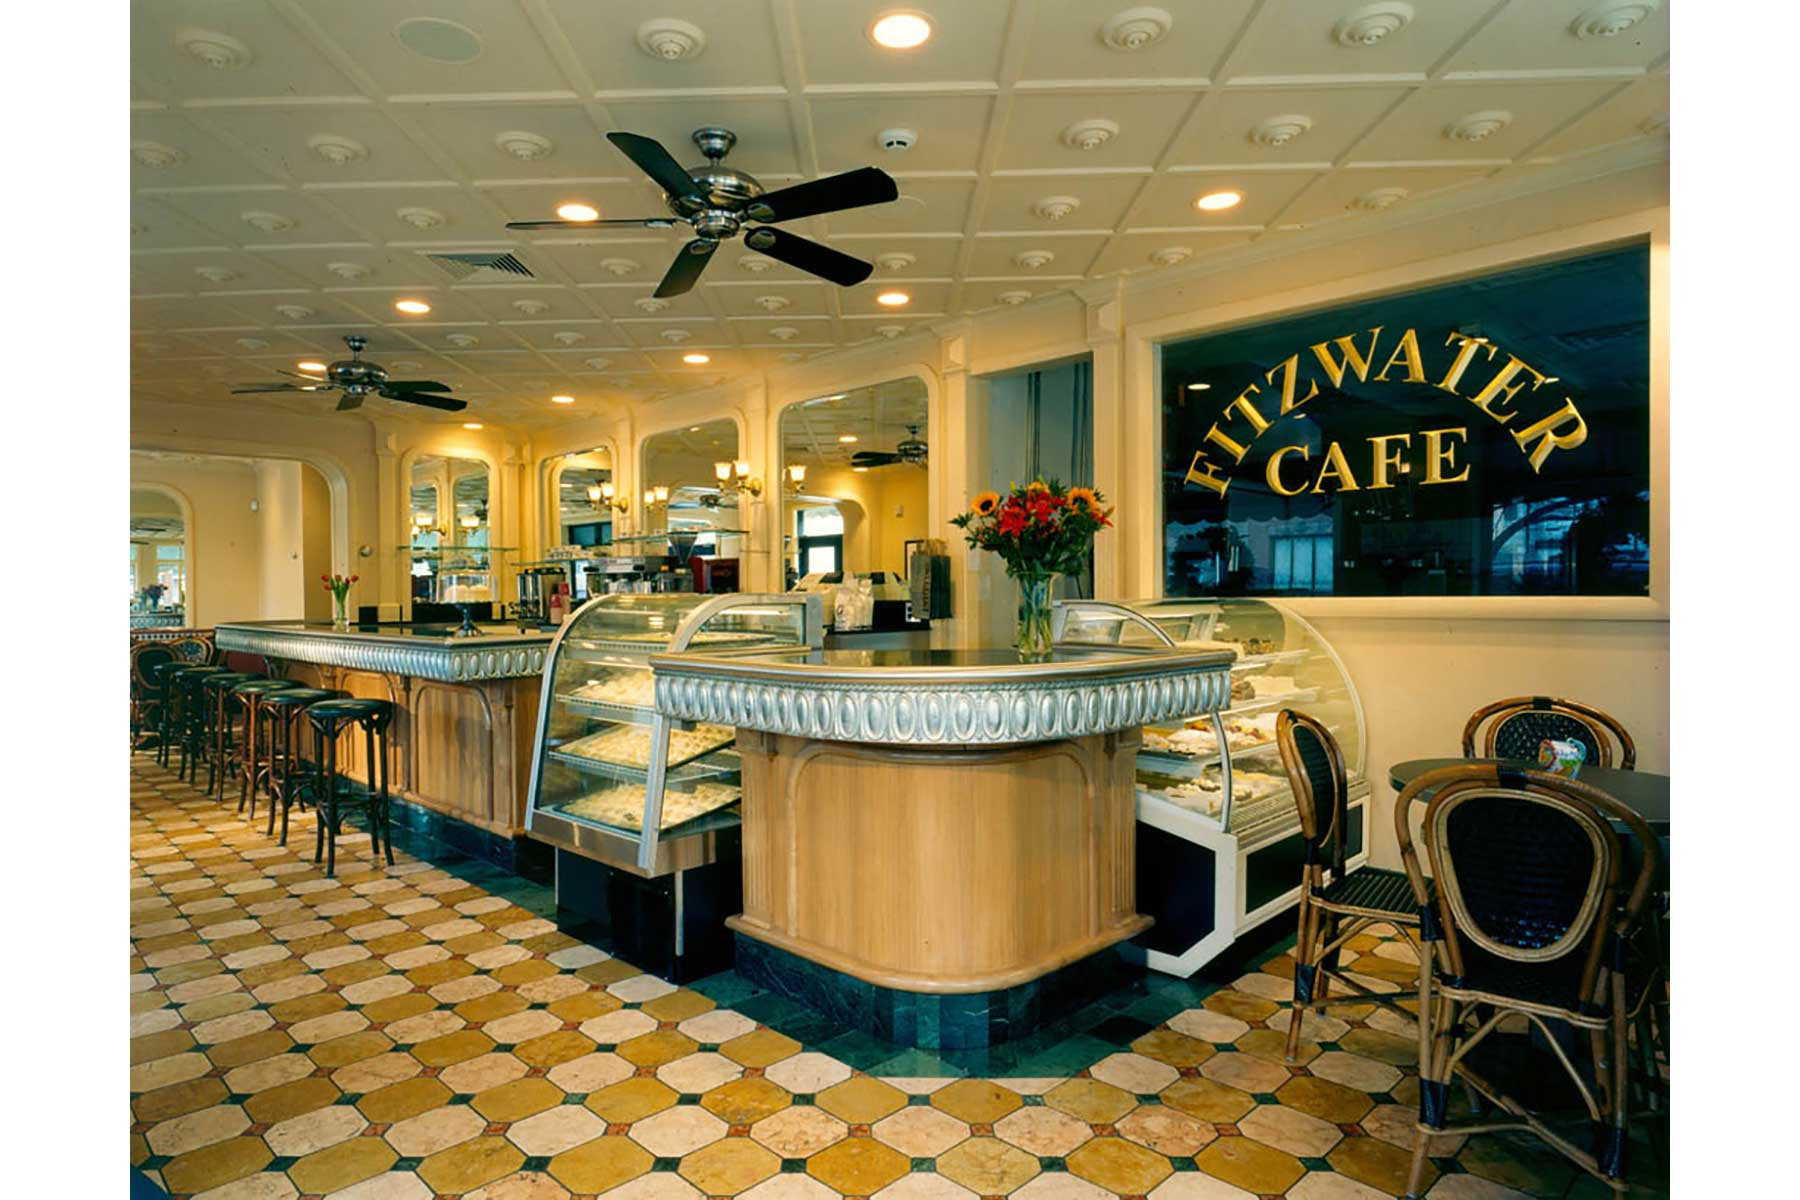 fitzwater cafe   marguerite rodgers interior design